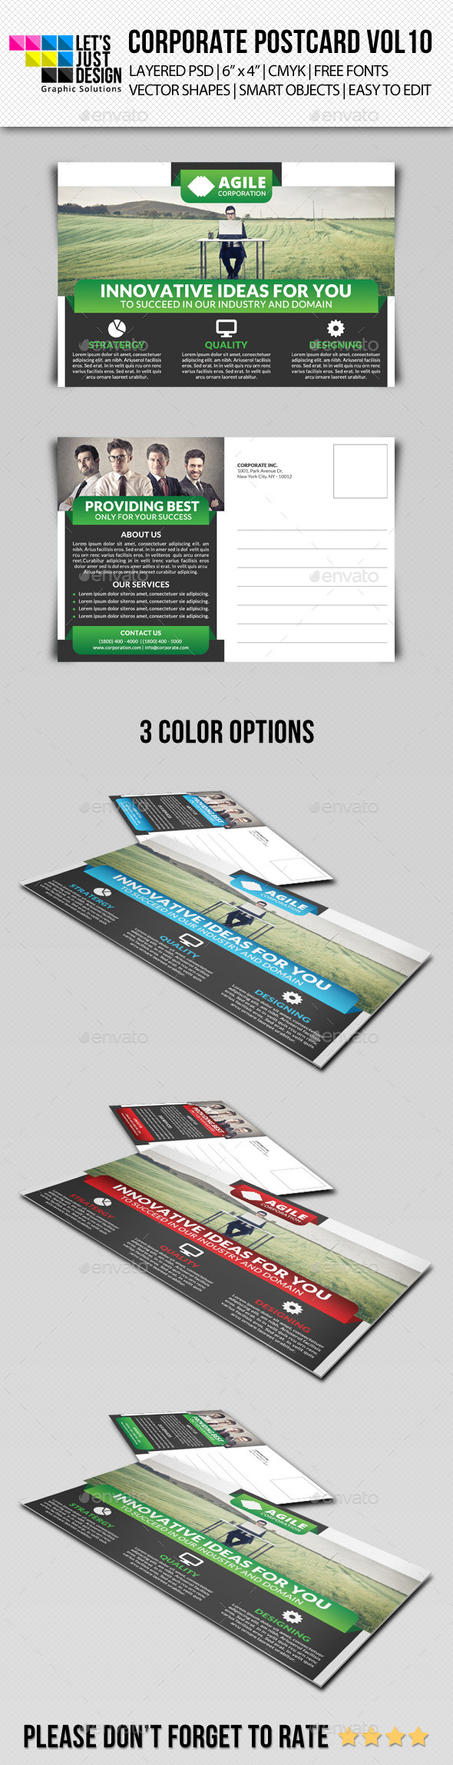 Corporate Postcard Template Vol 10 by jasonmendes